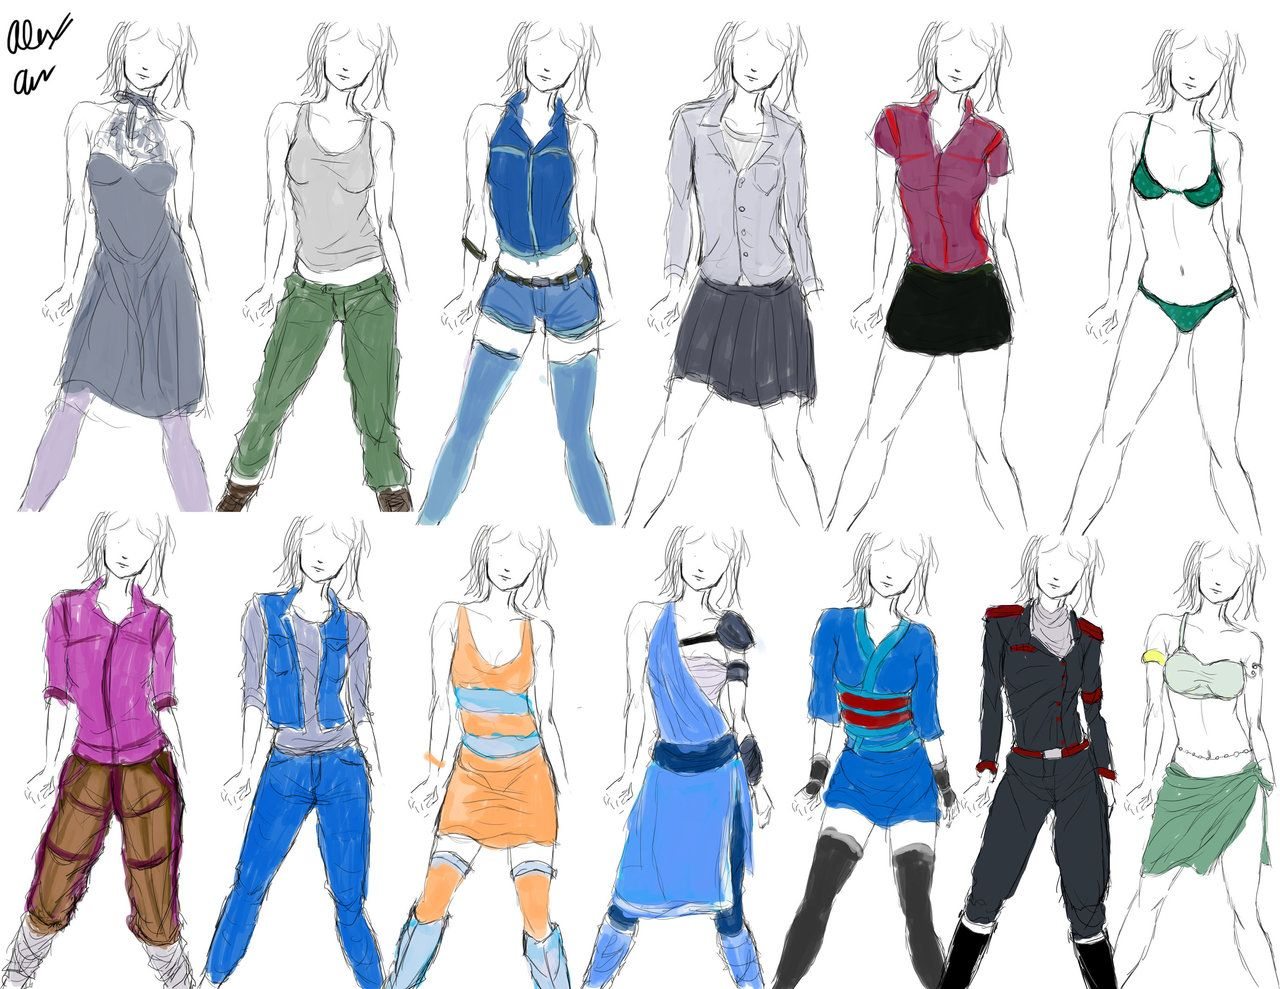 anime clothing clothing designs practice 1 by Goldencard